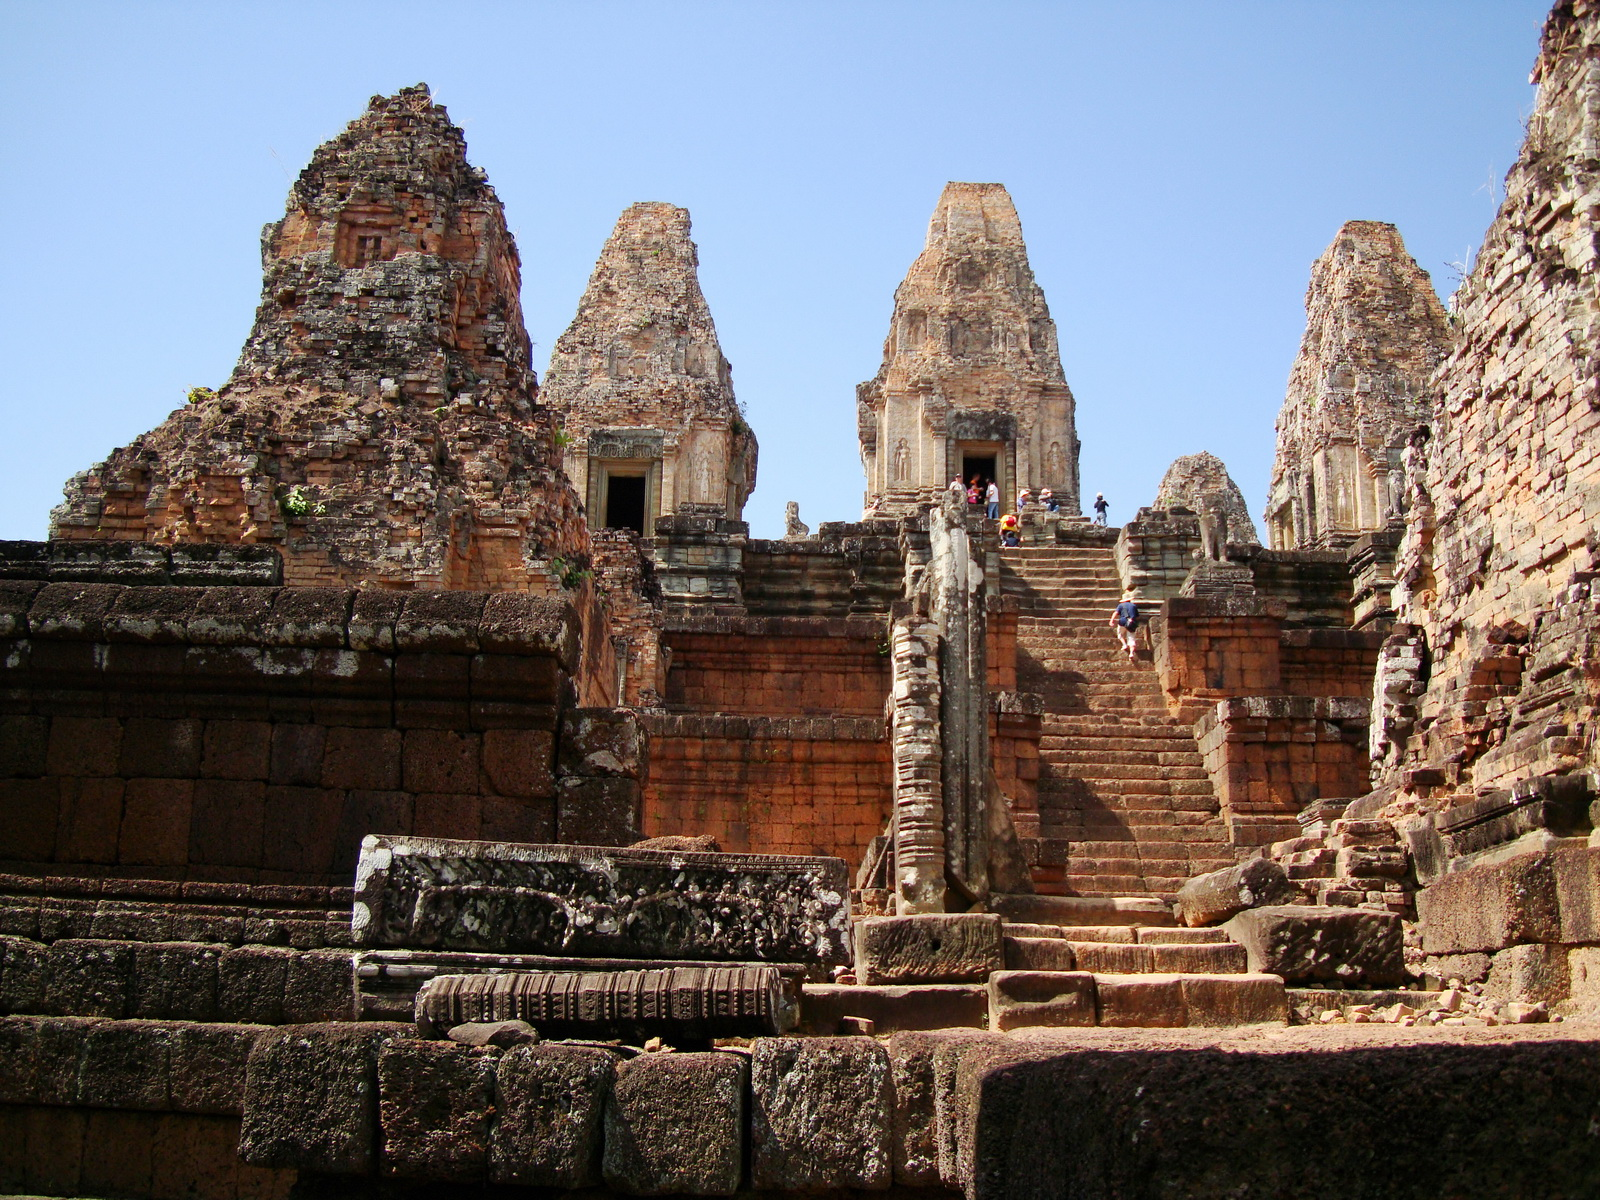 Facing West Pre Rup Temple central tower stairs East Baray 2010 01